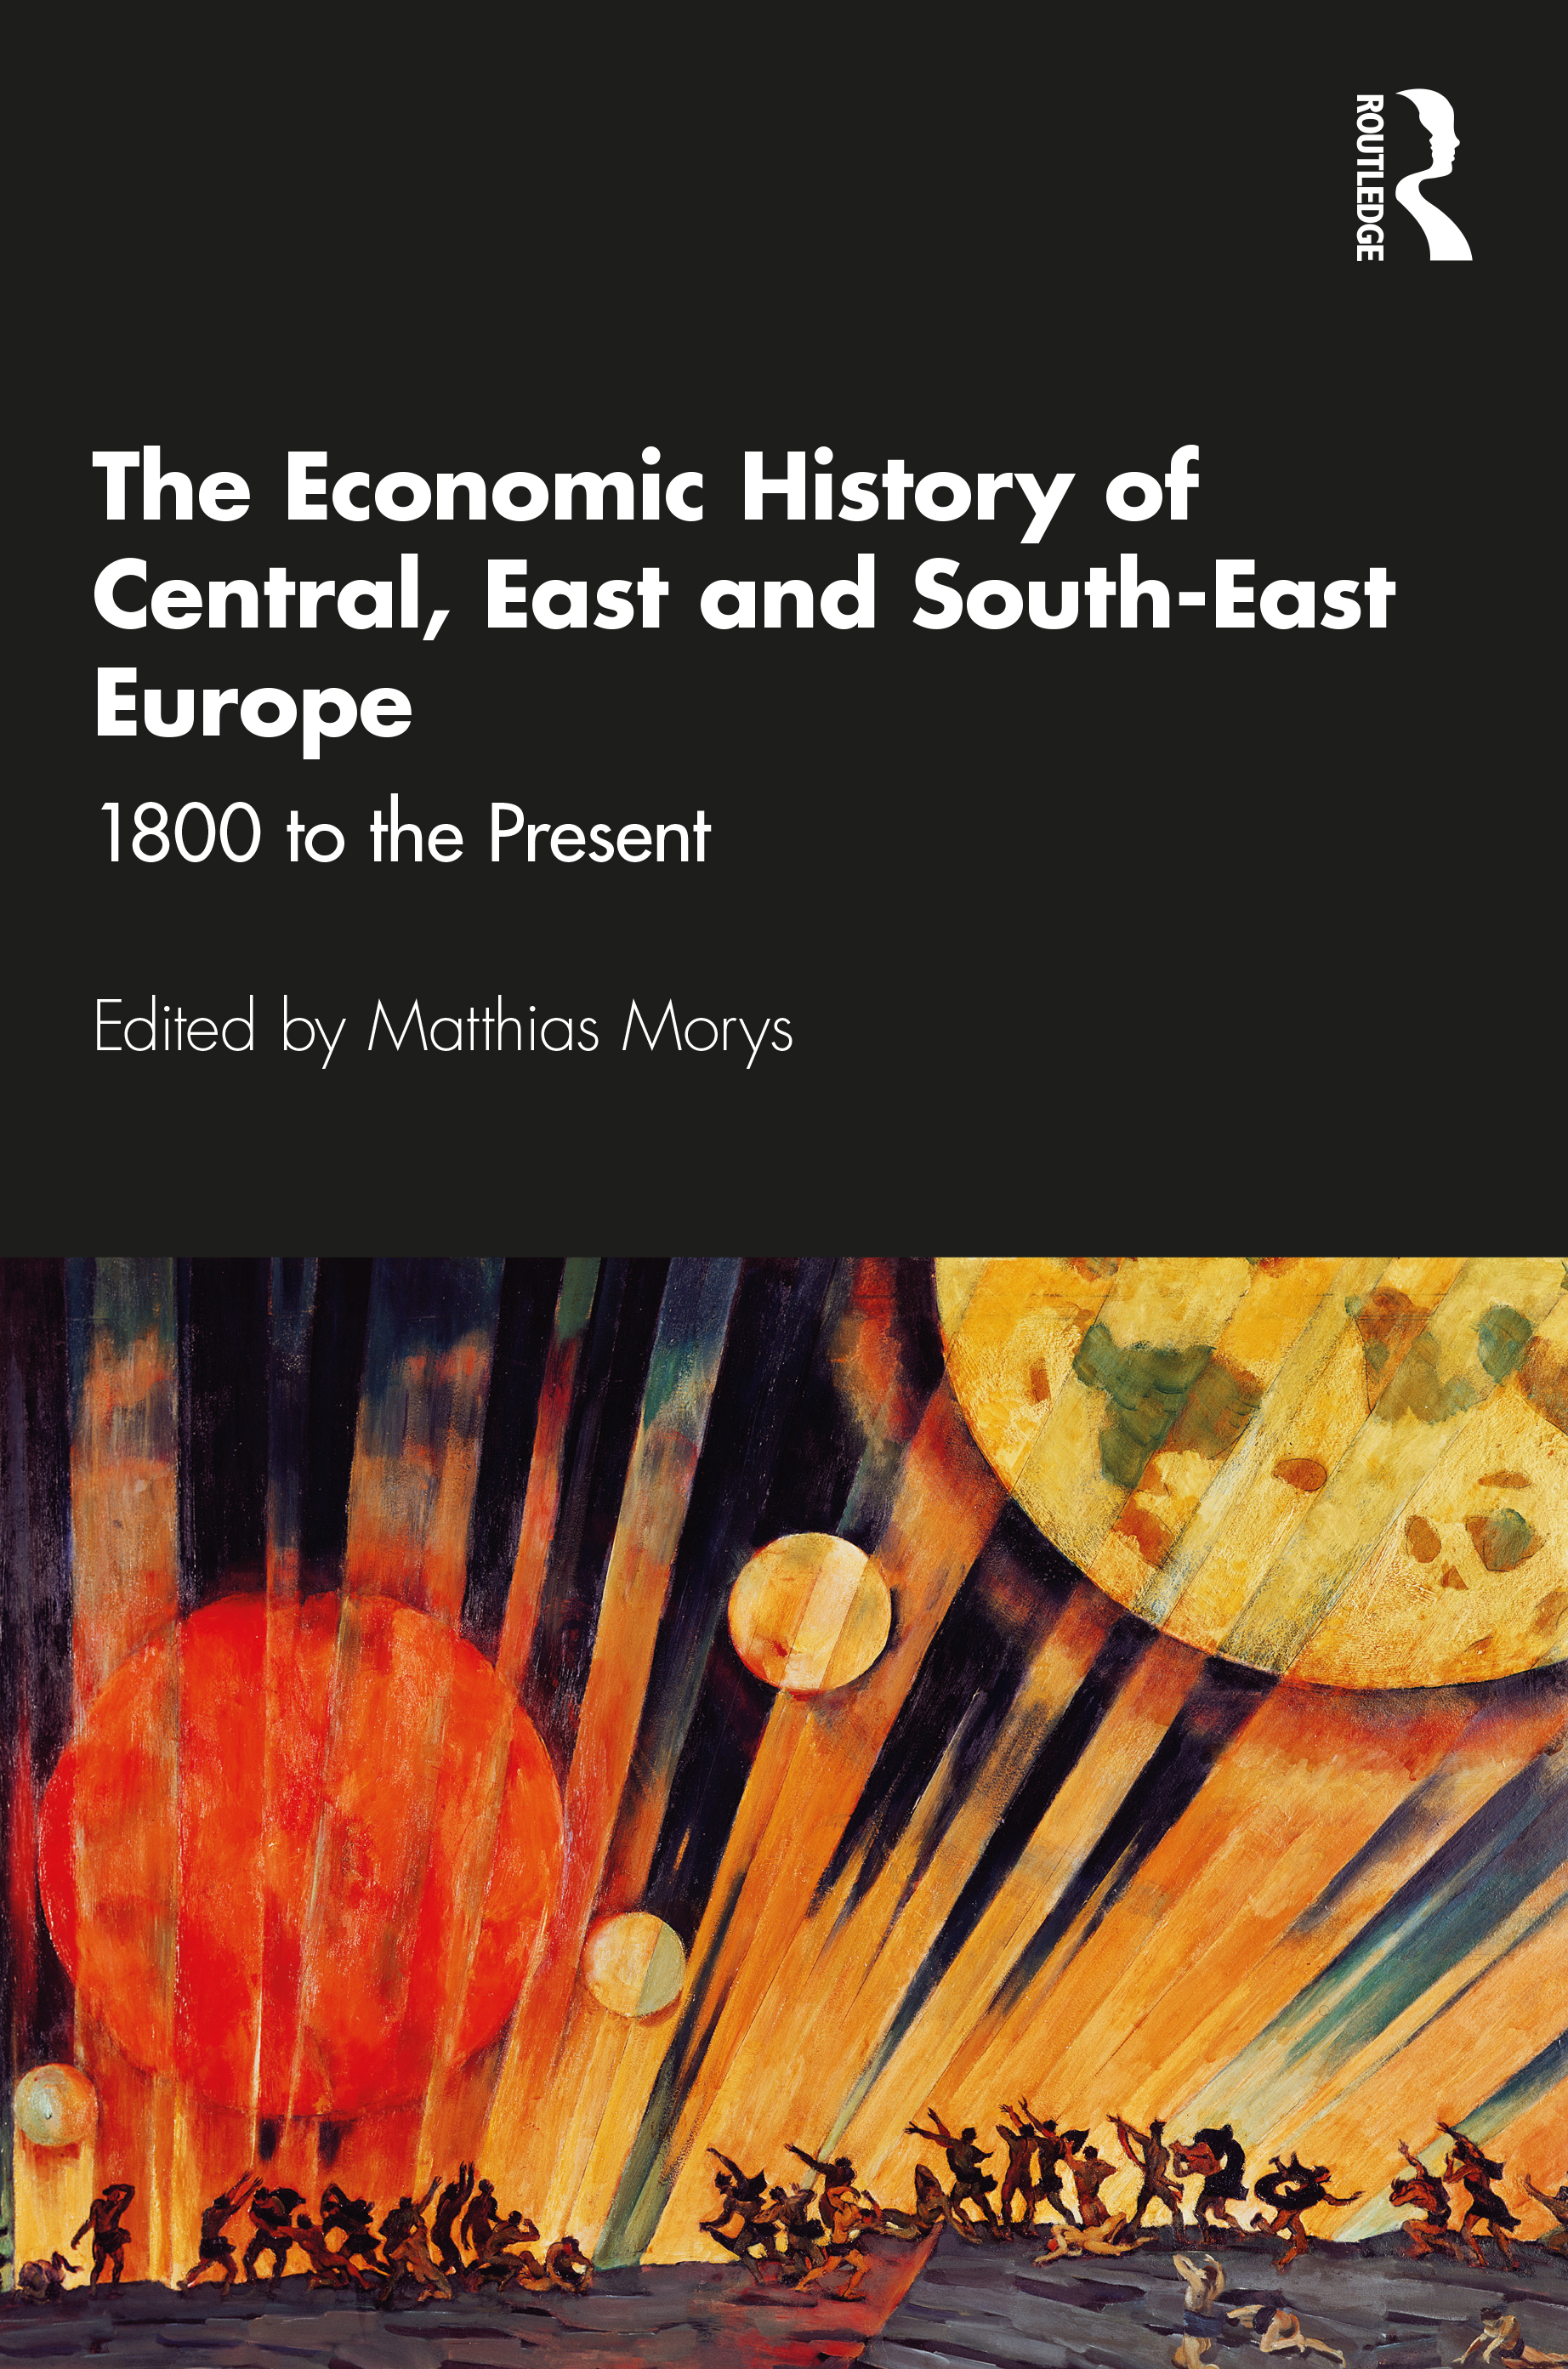 The Economic History of Central, East and South-East Europe